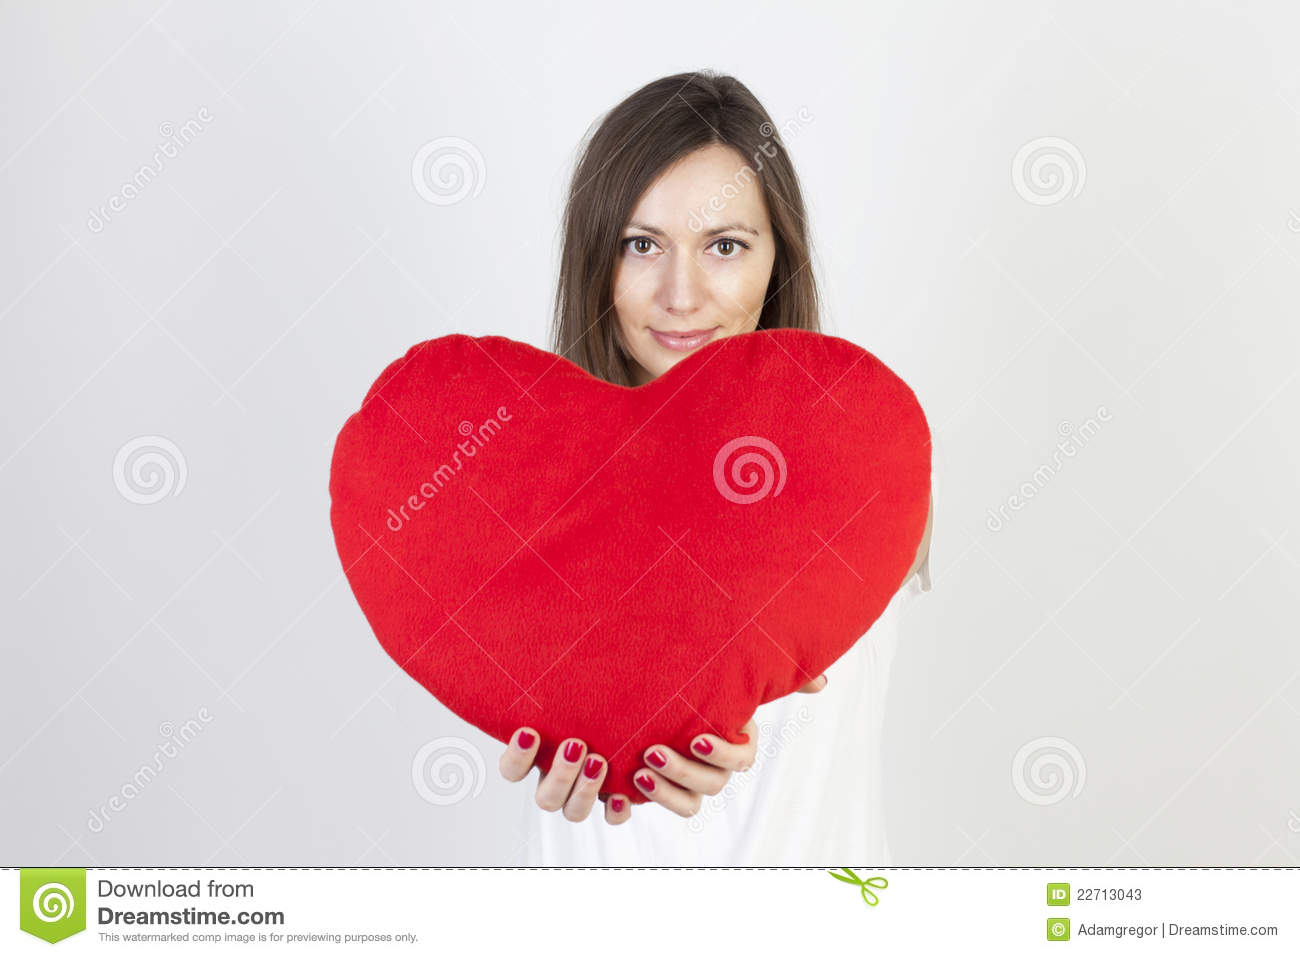 Celebrating valentines day stock image. Image of looking ...